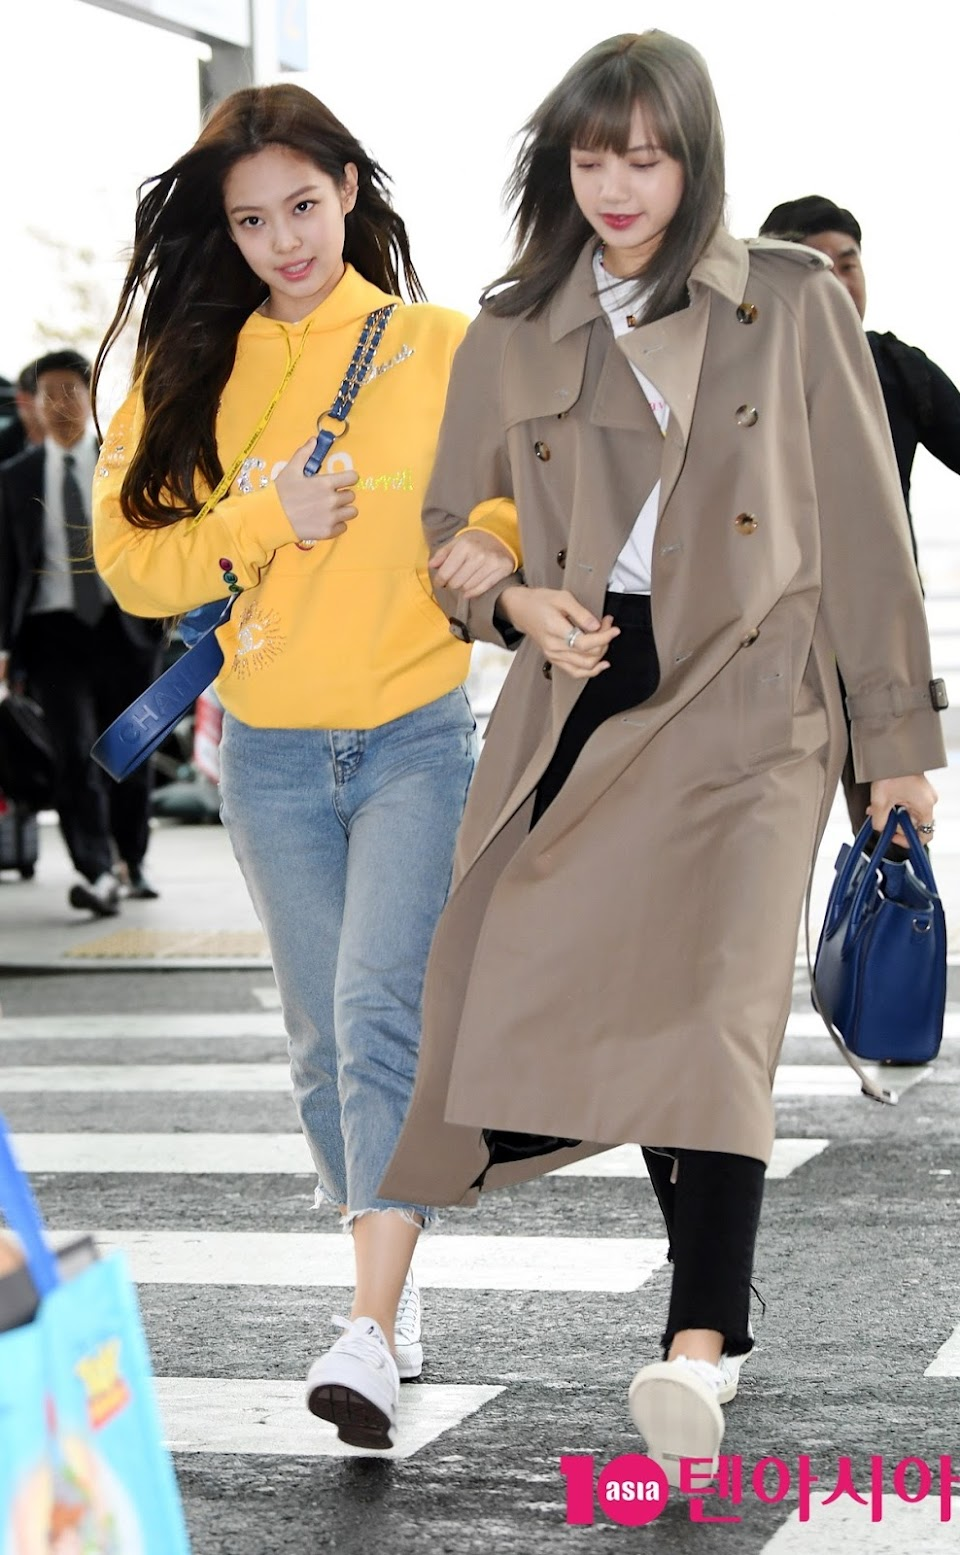 4-BLACKPINK-Jennie-airport-Photo-9-April-2019-Incheon-to-Thailand